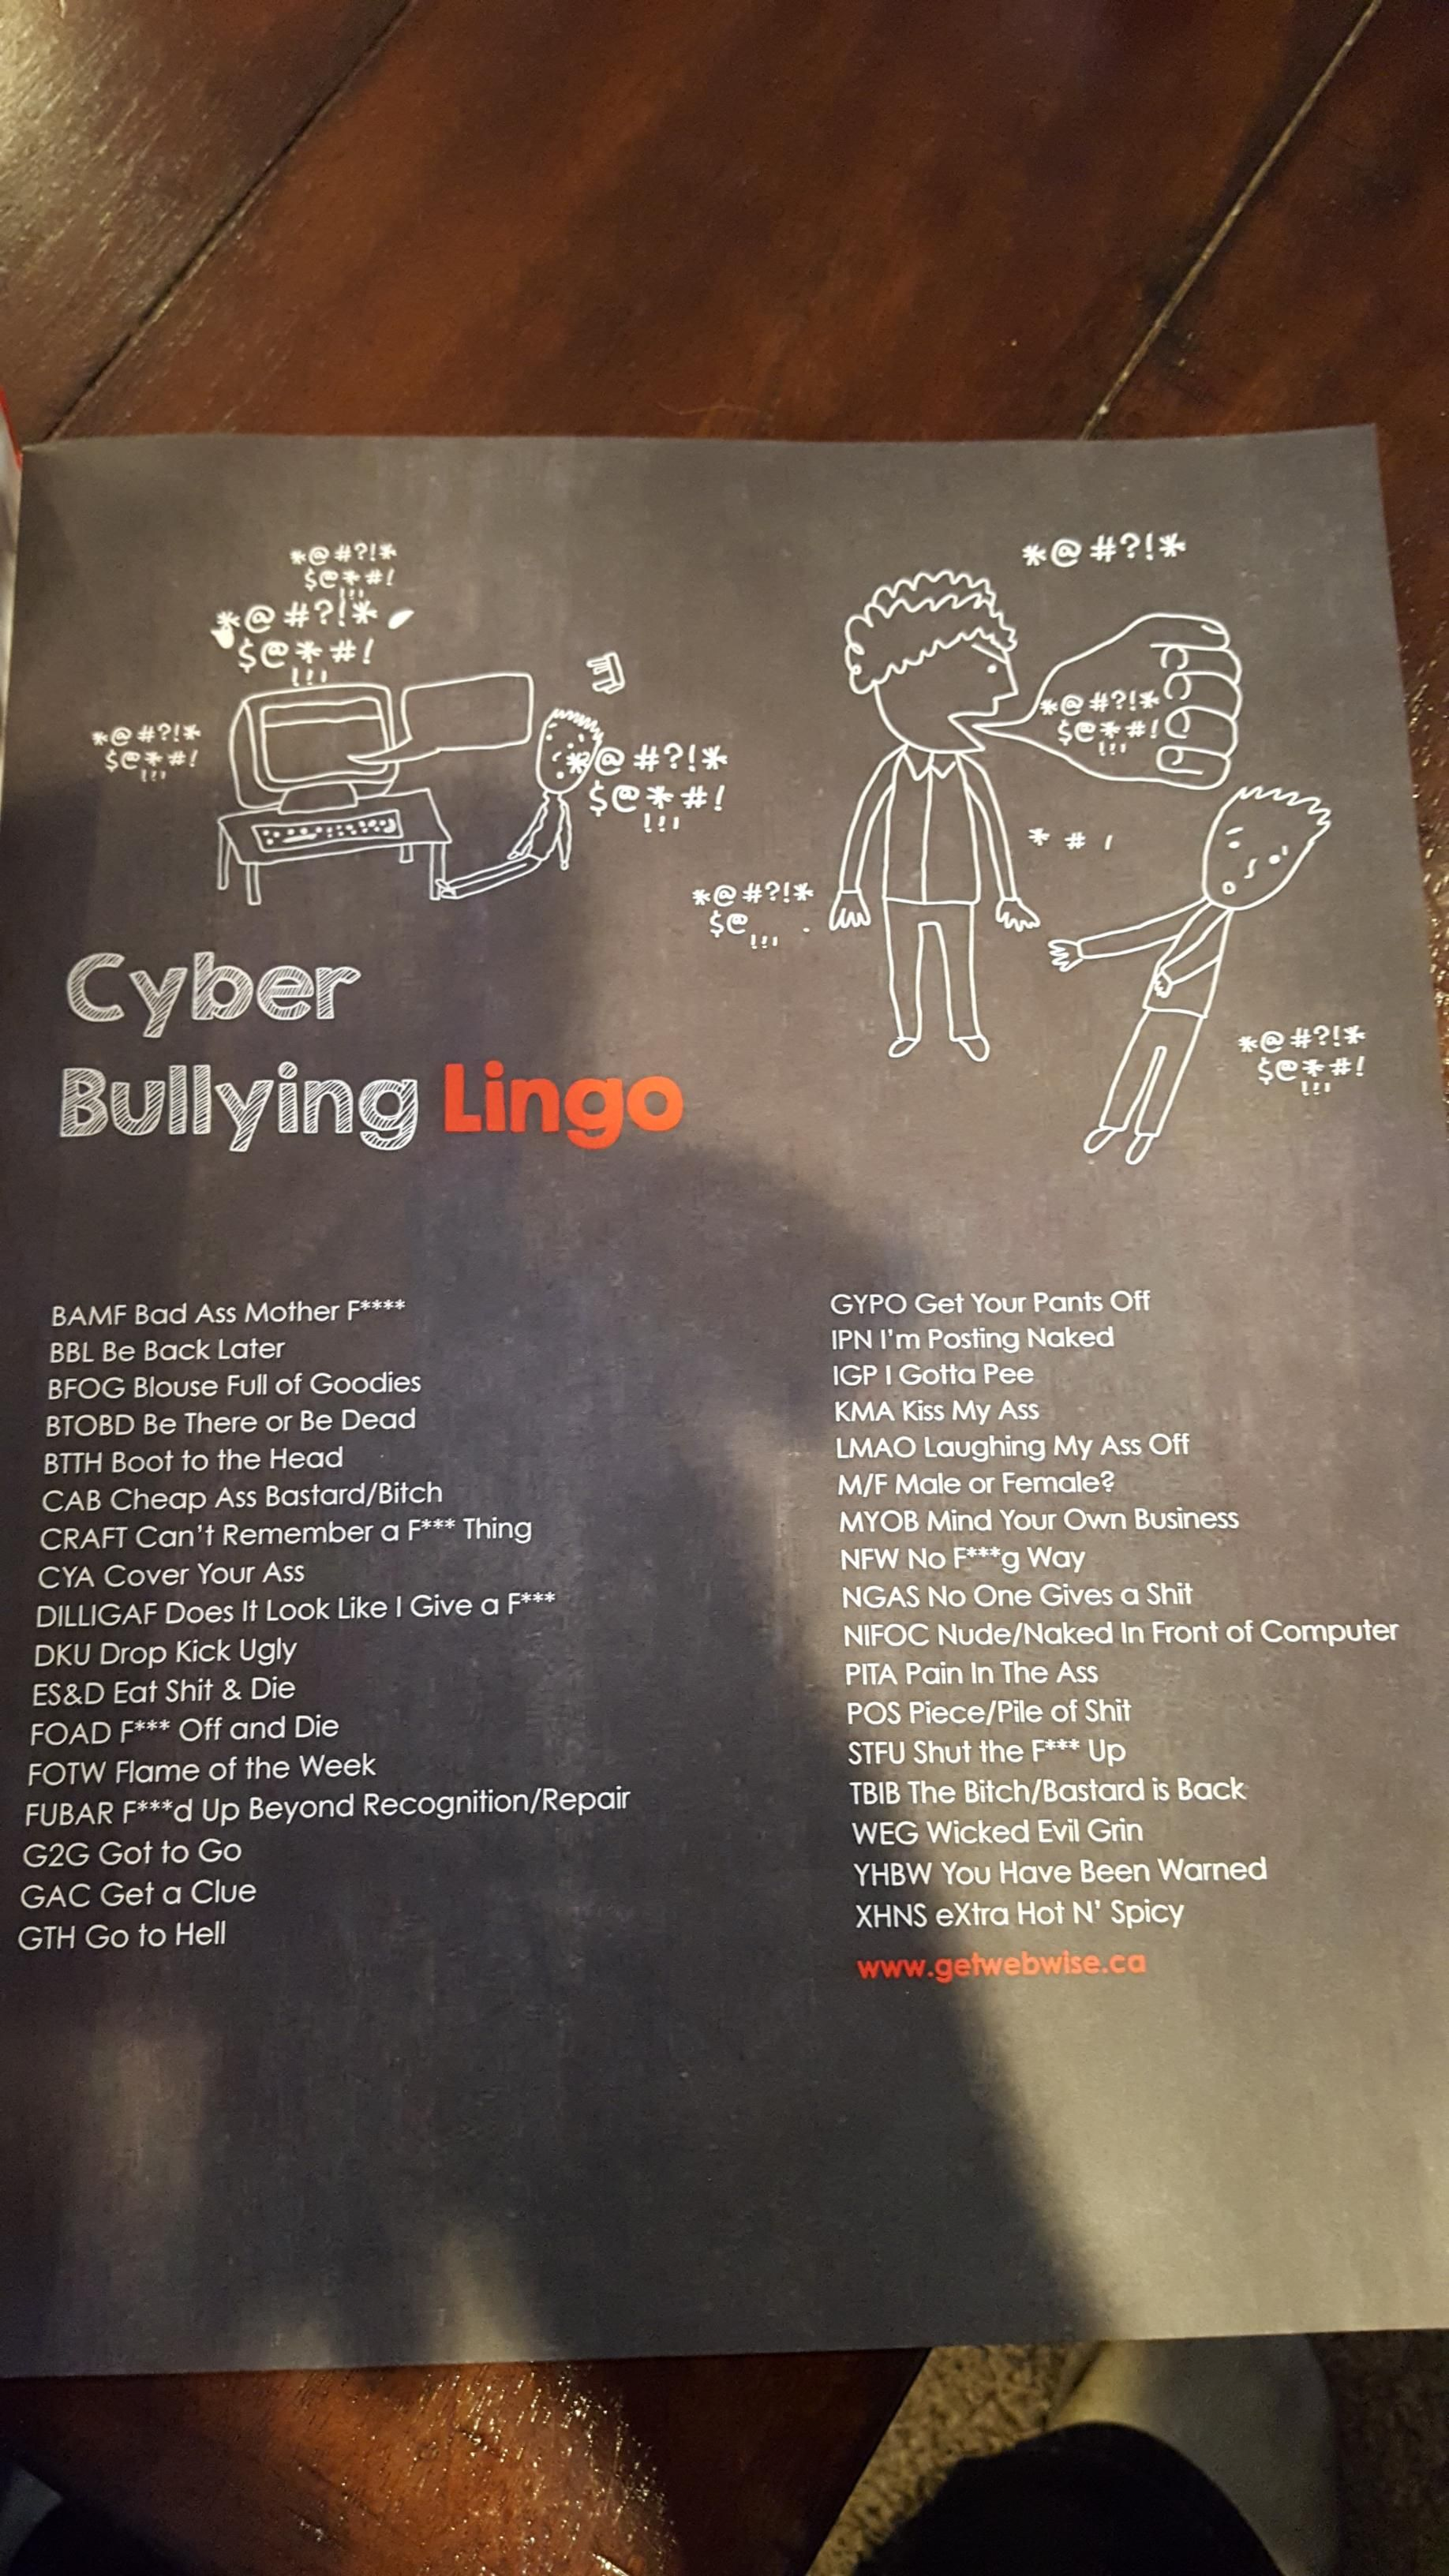 medium resolution of cyber bullying lingo my nephew brought home